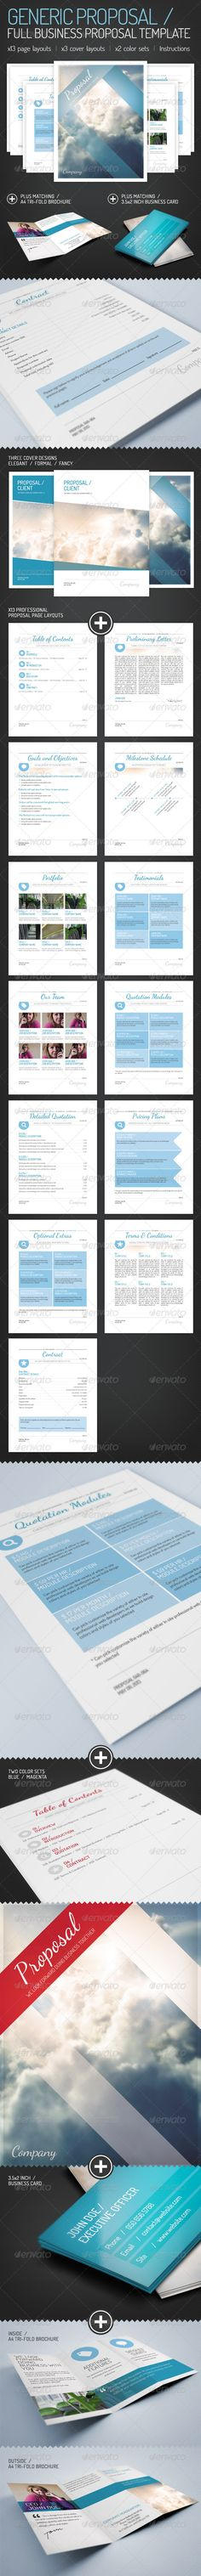 Simple 4 Pages Proposal for Web Developers - Proposals  Invoices - Sample Contract Proposal Template